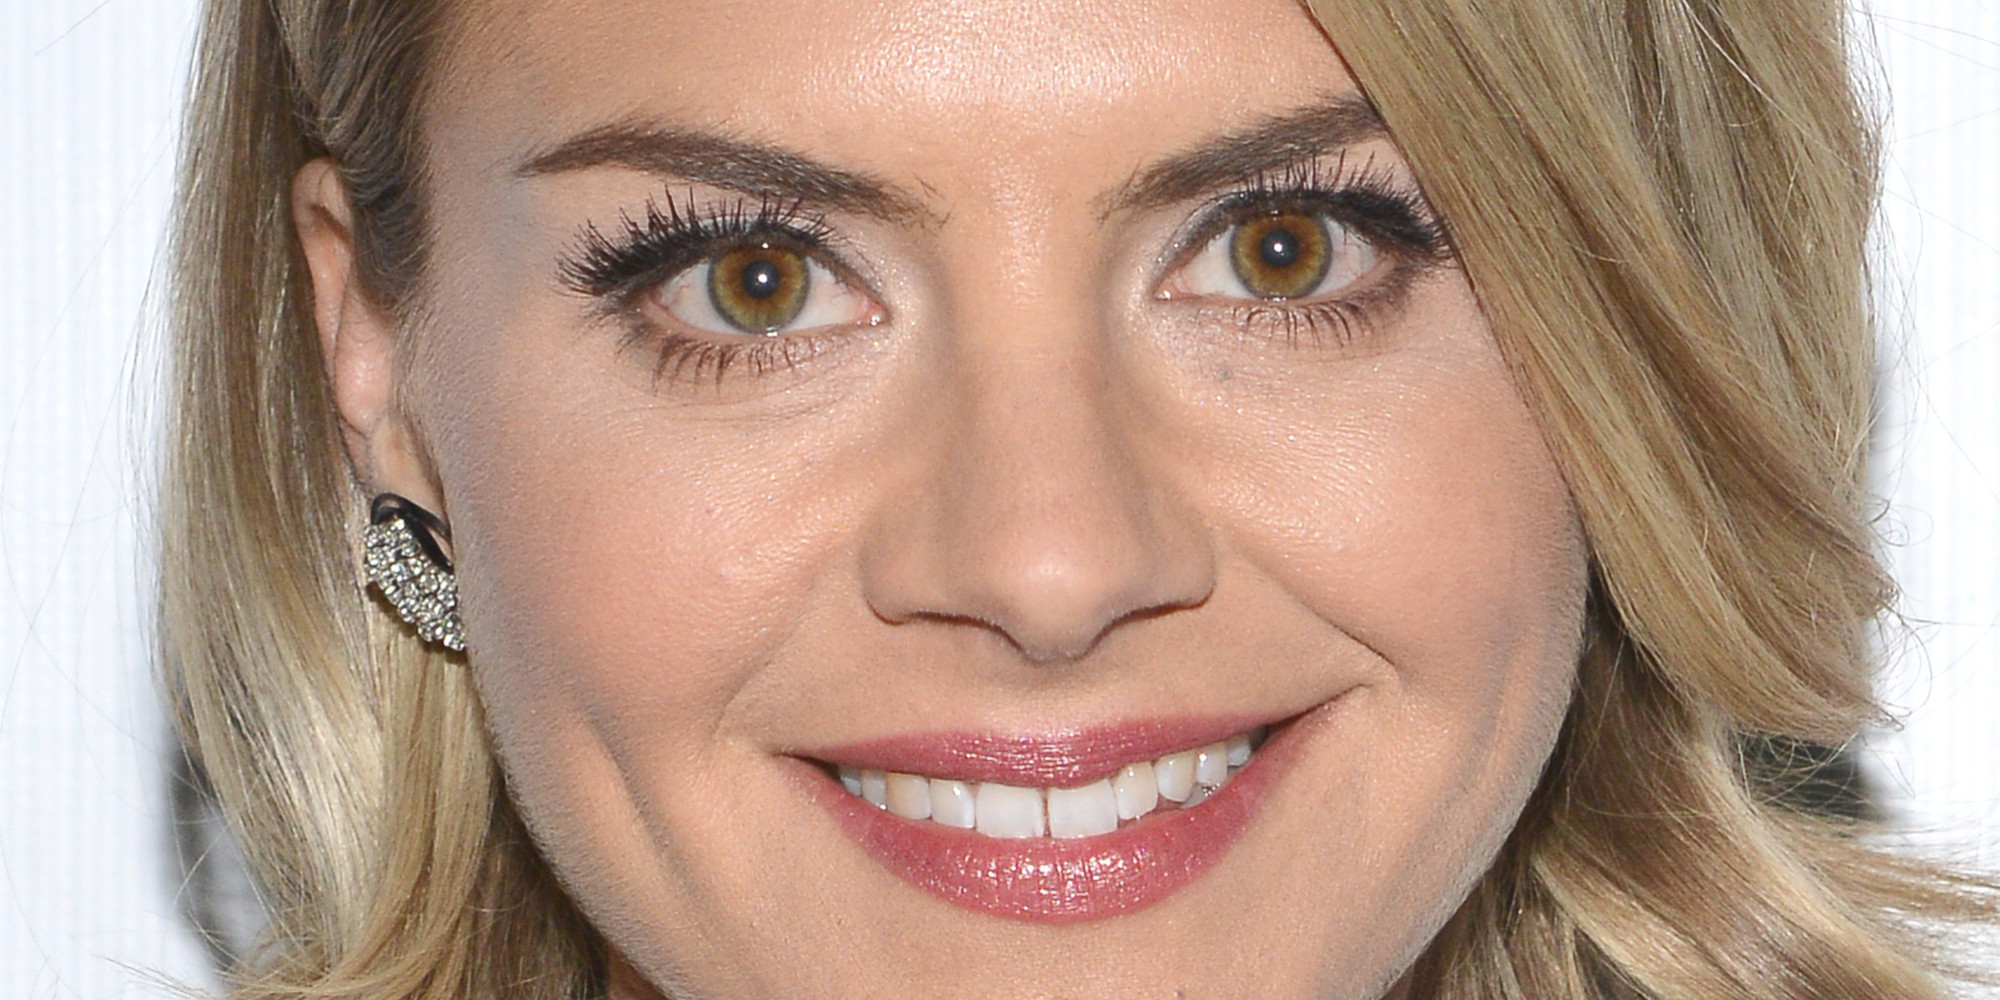 2000x1000 - Eliza Coupe Wallpapers 23